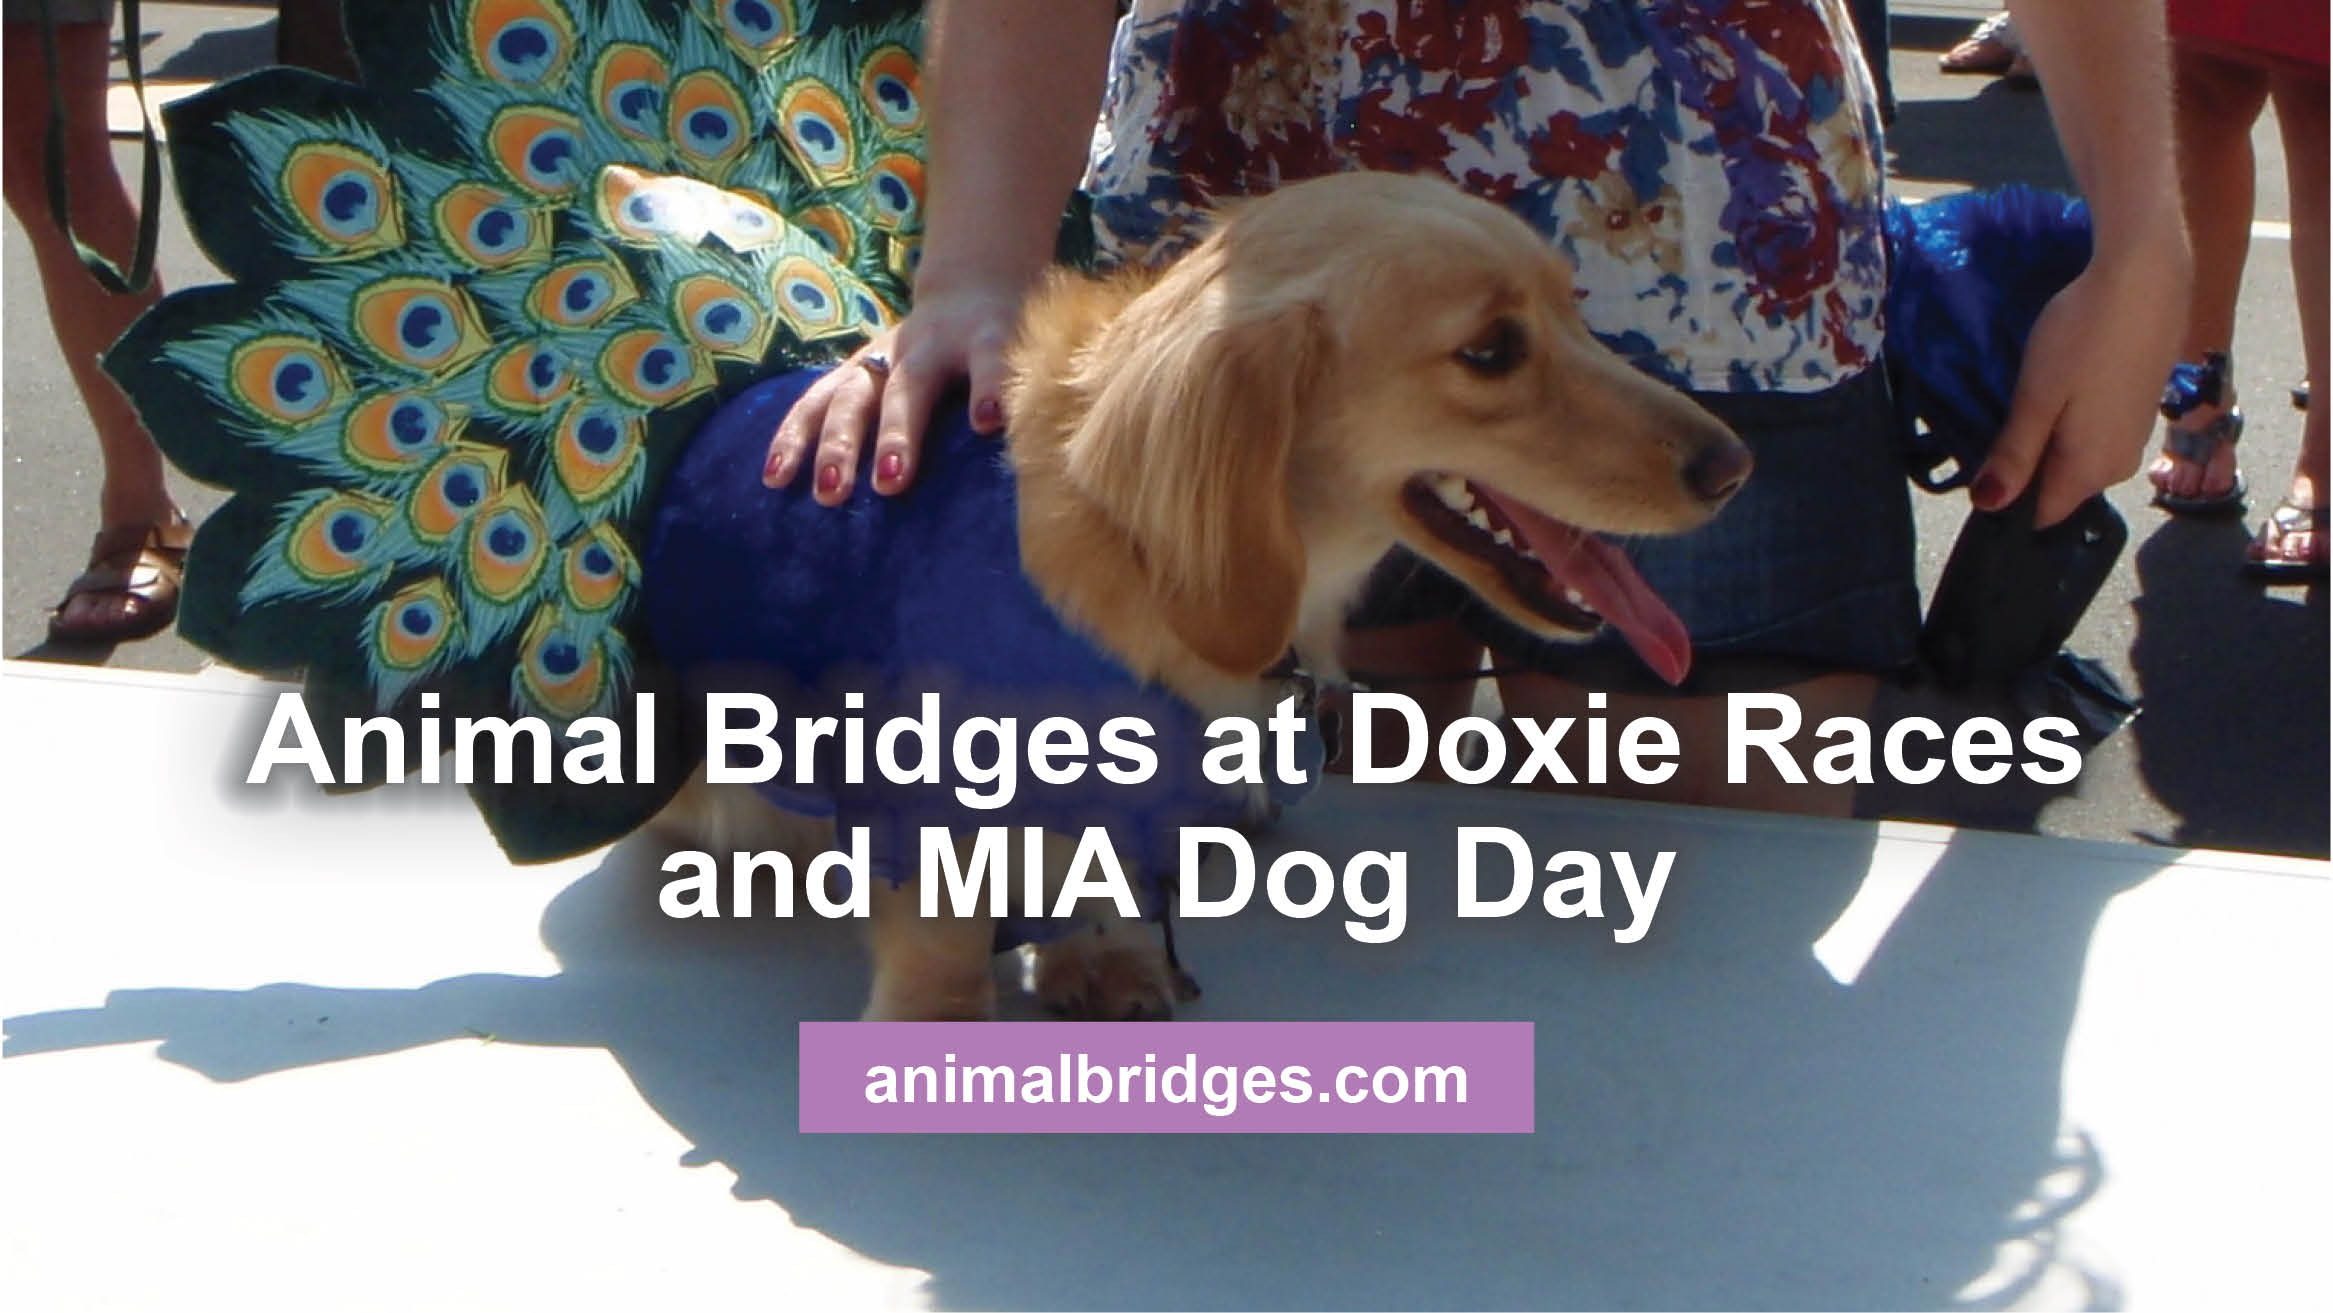 Animal Bridges at Doxie Races and MIA Dog Day